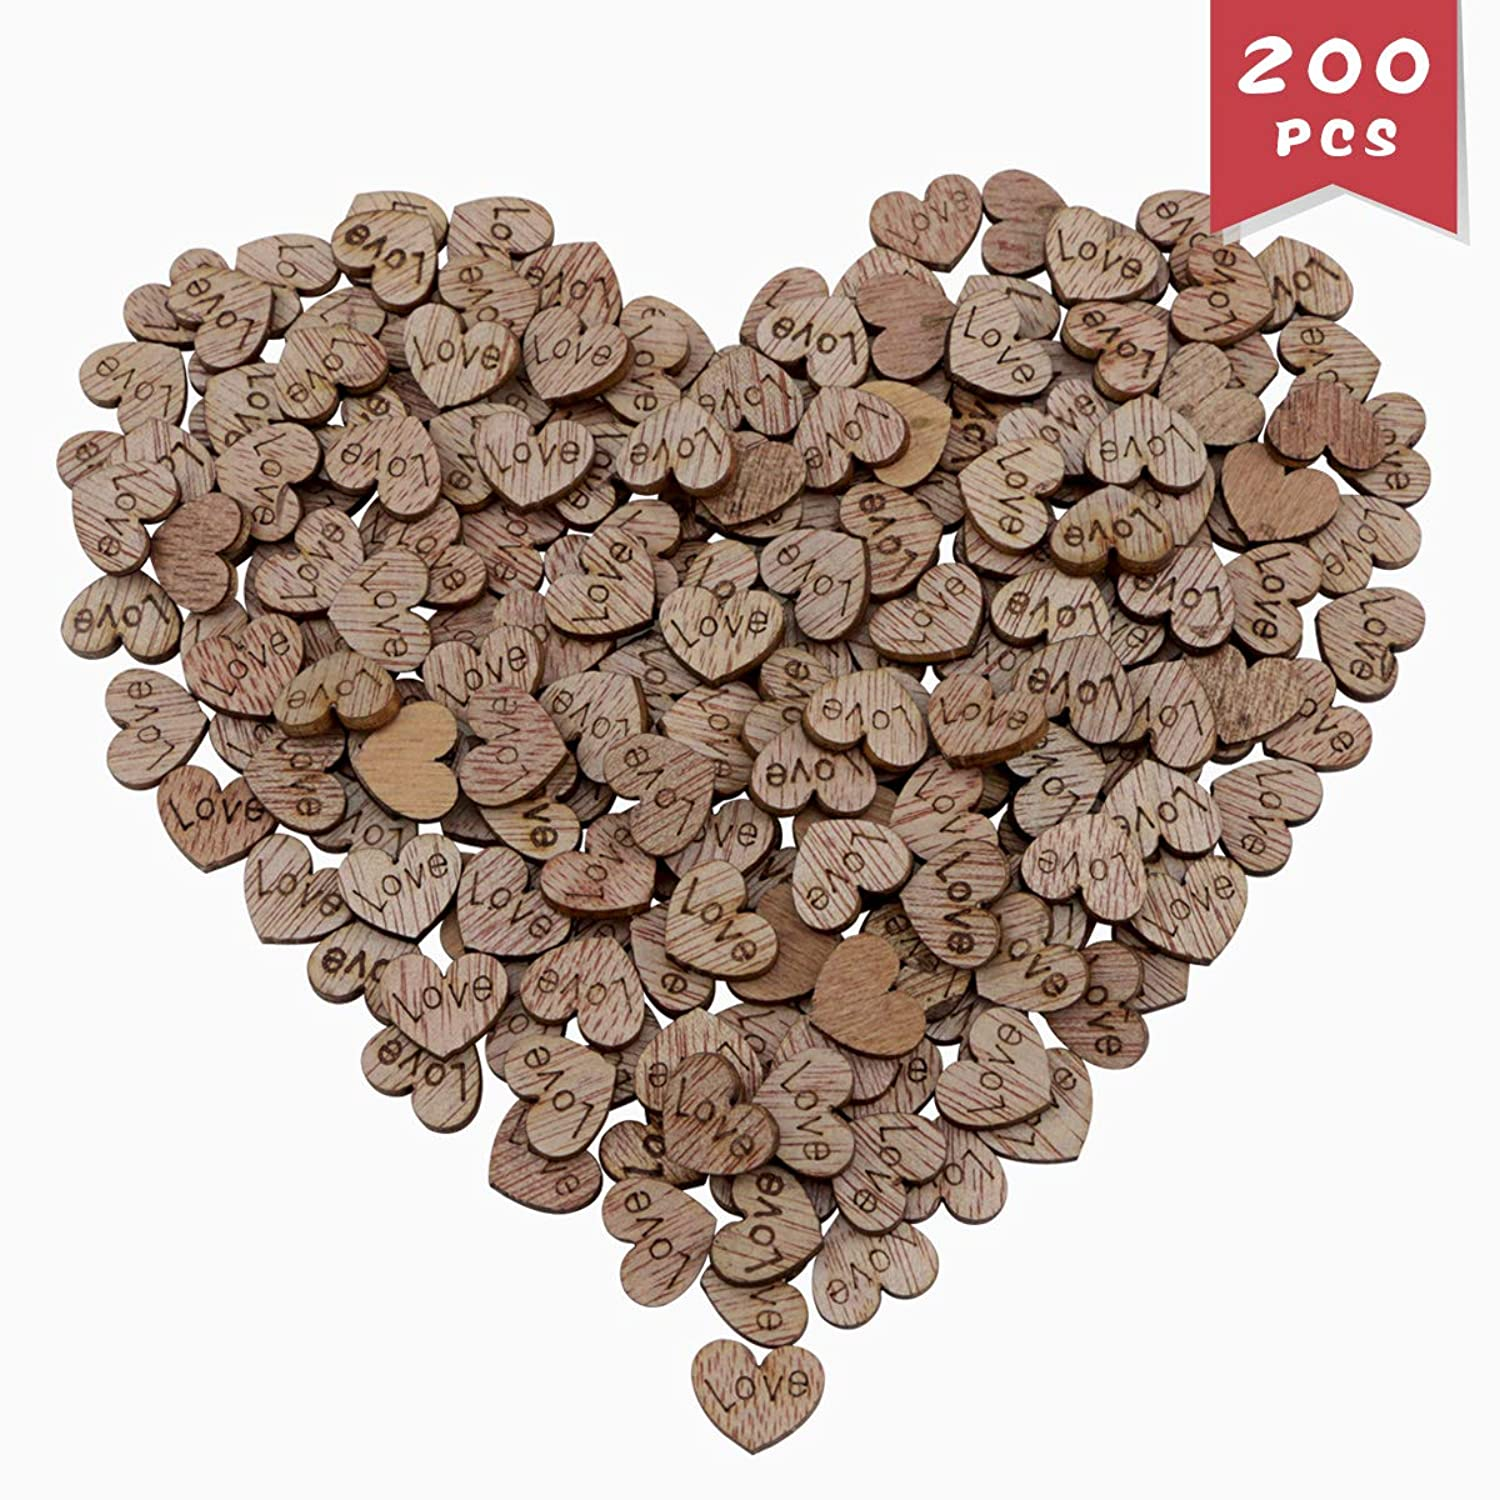 DLOnline 200PCS Wooden Love Heart Shaped Wood Slices Crafts for Wedding Table Scatter Decoration